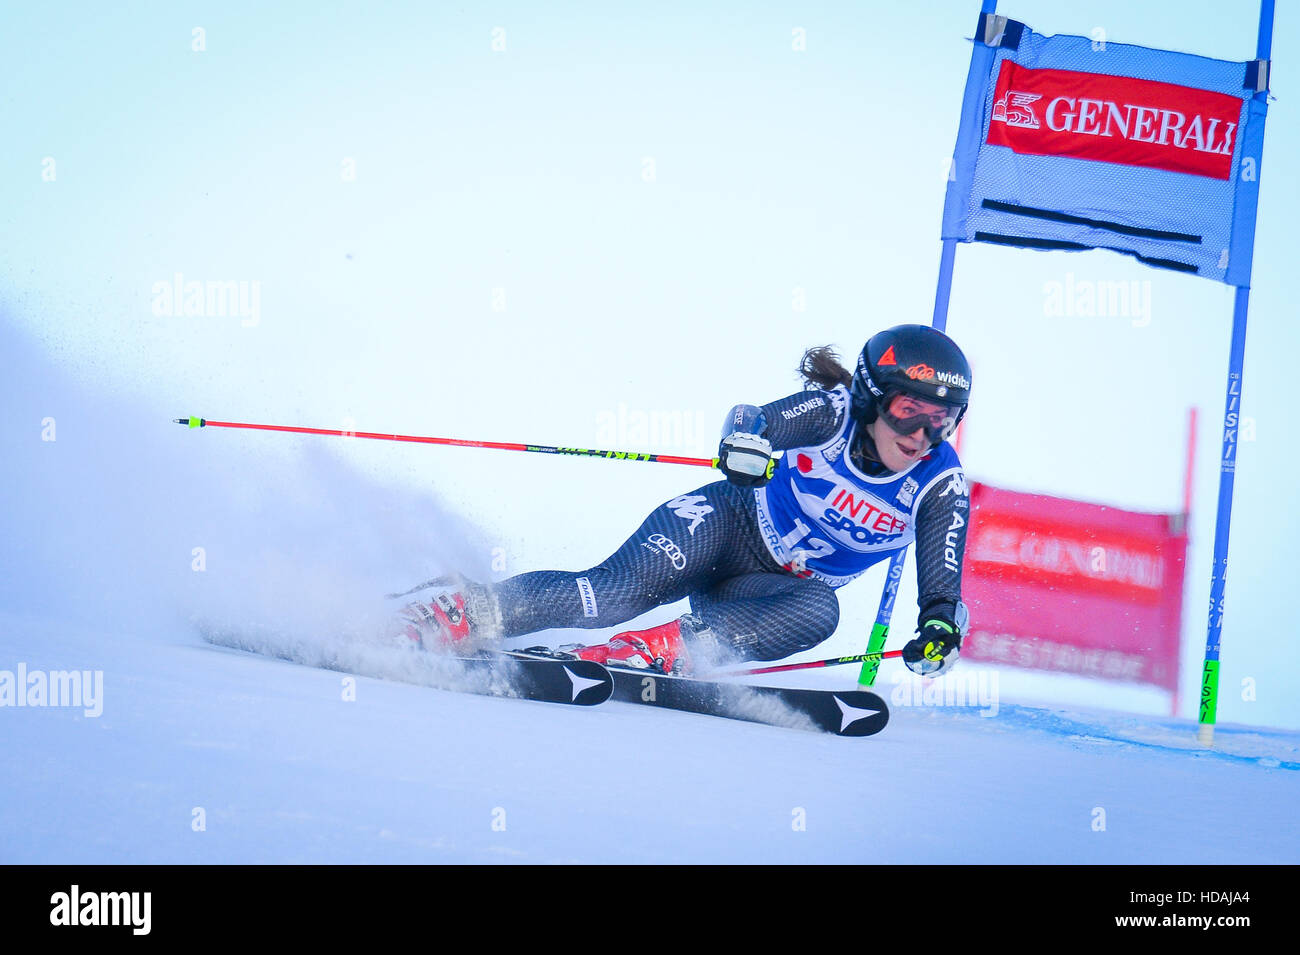 Sestriere, Italy. 10th December, 2016. Audi FIS Women Giant Slalom World Cup in Sestriere on the Kandahar slope, - Stock Image